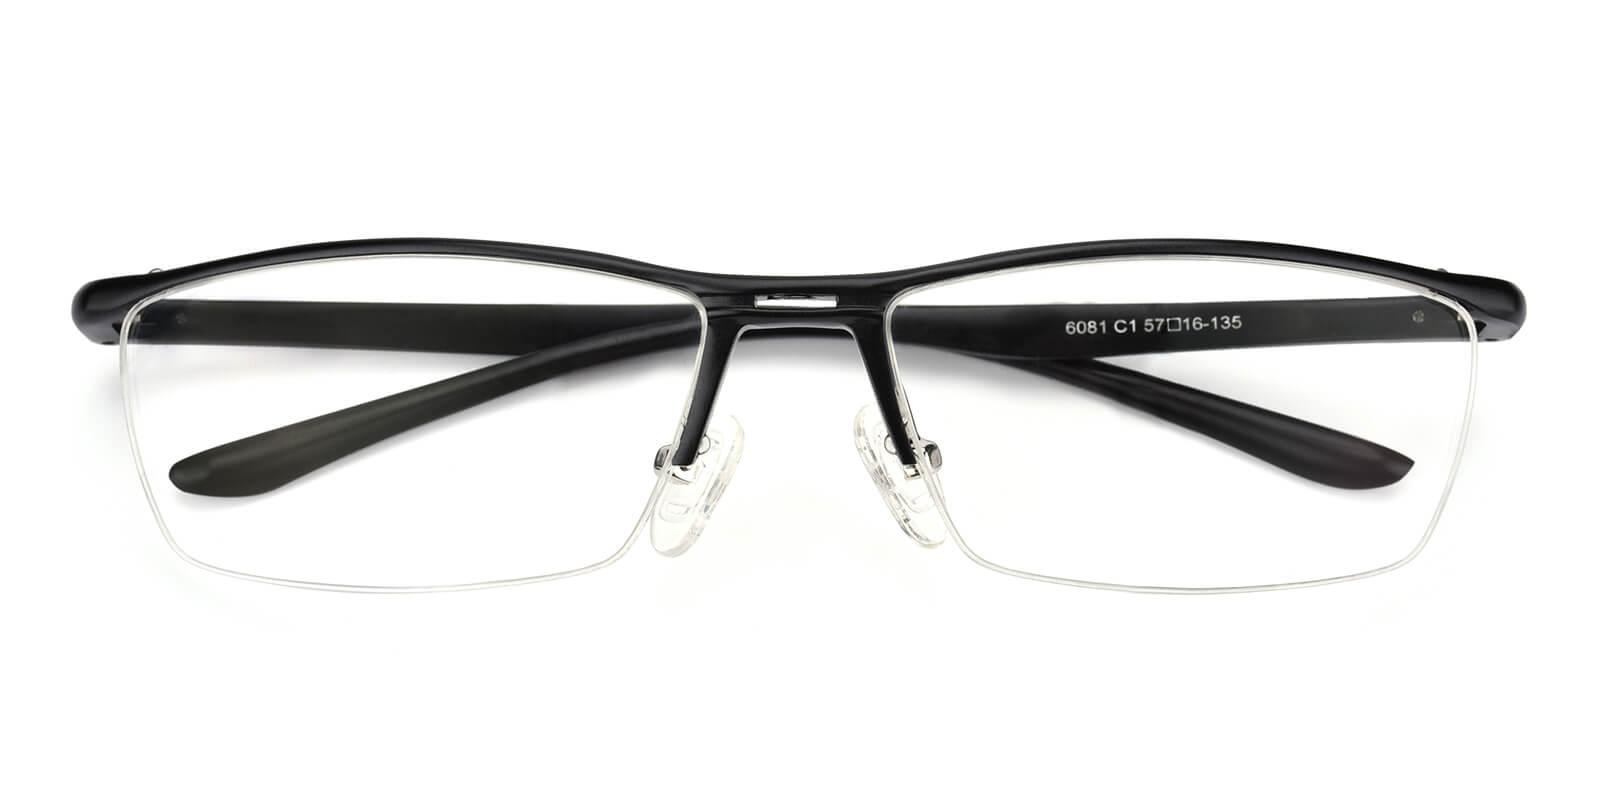 Vauseper-Black-Rectangle-Metal-Eyeglasses-detail